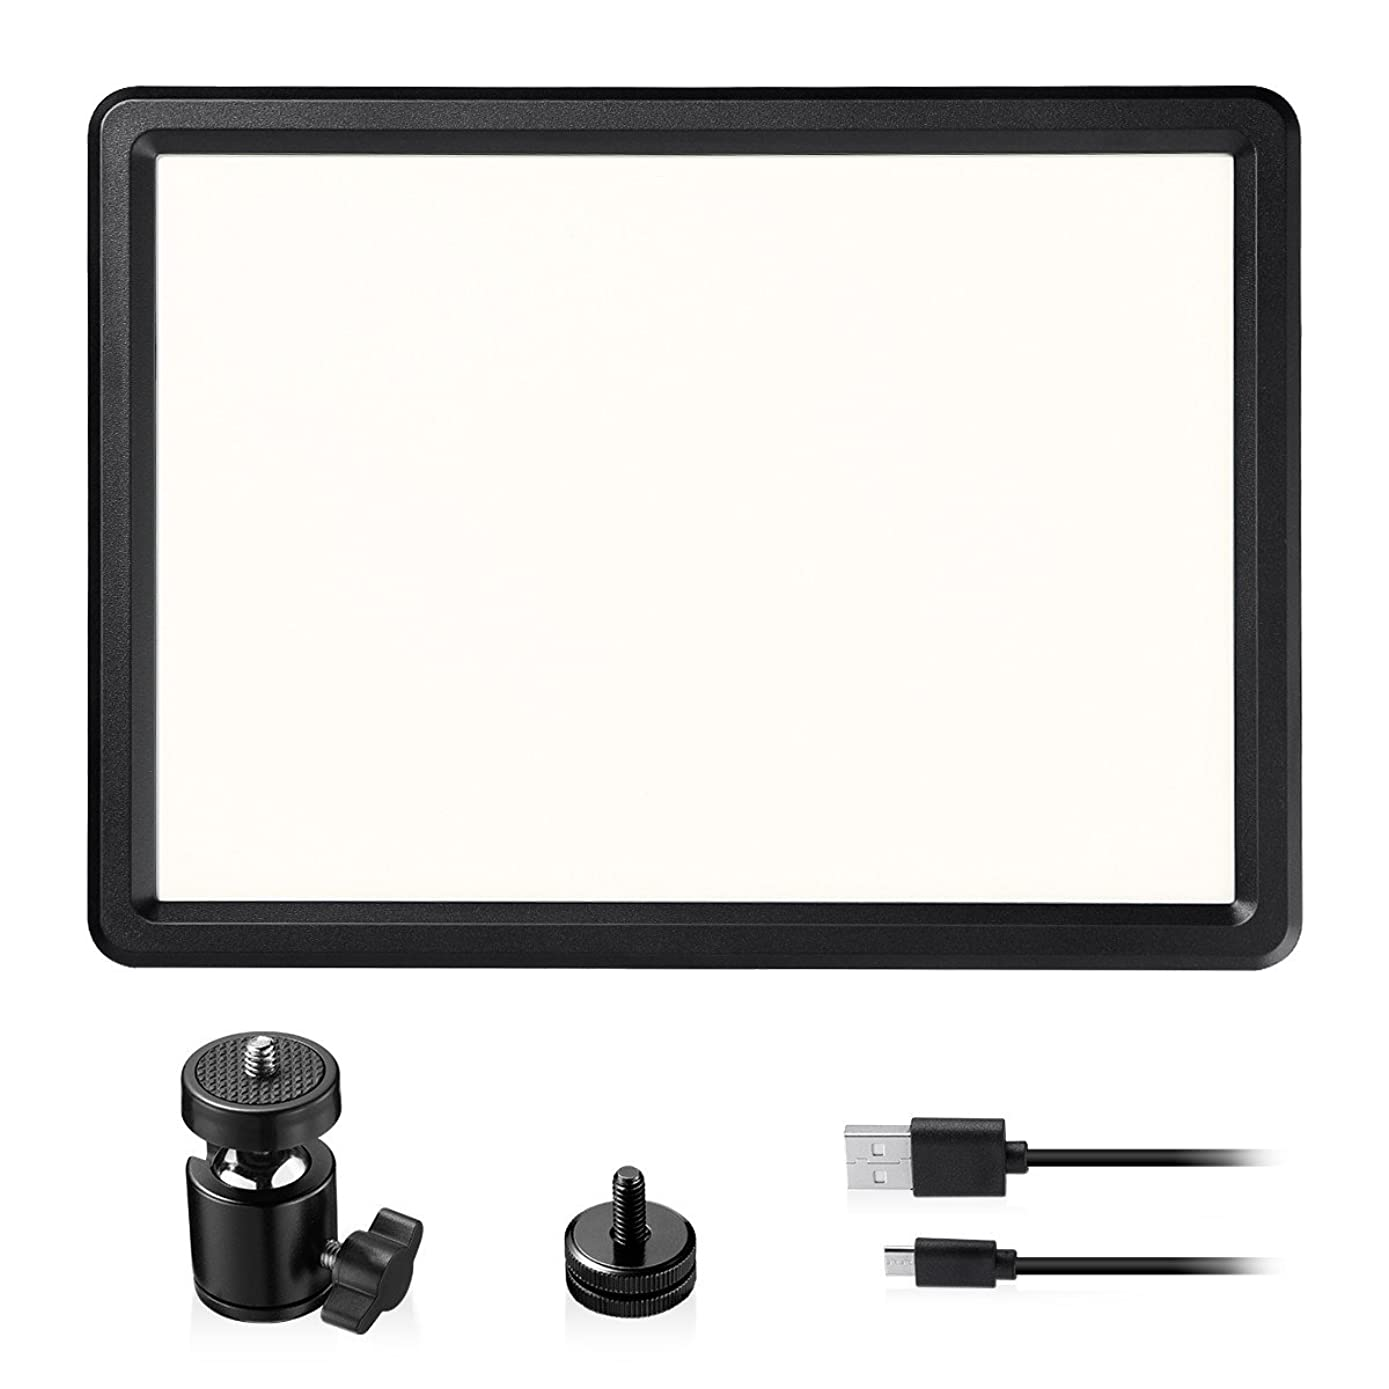 LED Video Light, Powerextra Bi-Color 10000mAh Power Pack 18W CRI95 Dimmable Video Lamp Panel Kits, 3200-6500K for Canon, Nikon, Panasonic, Samsung, Olympus and Other Digital DSLR Cameras